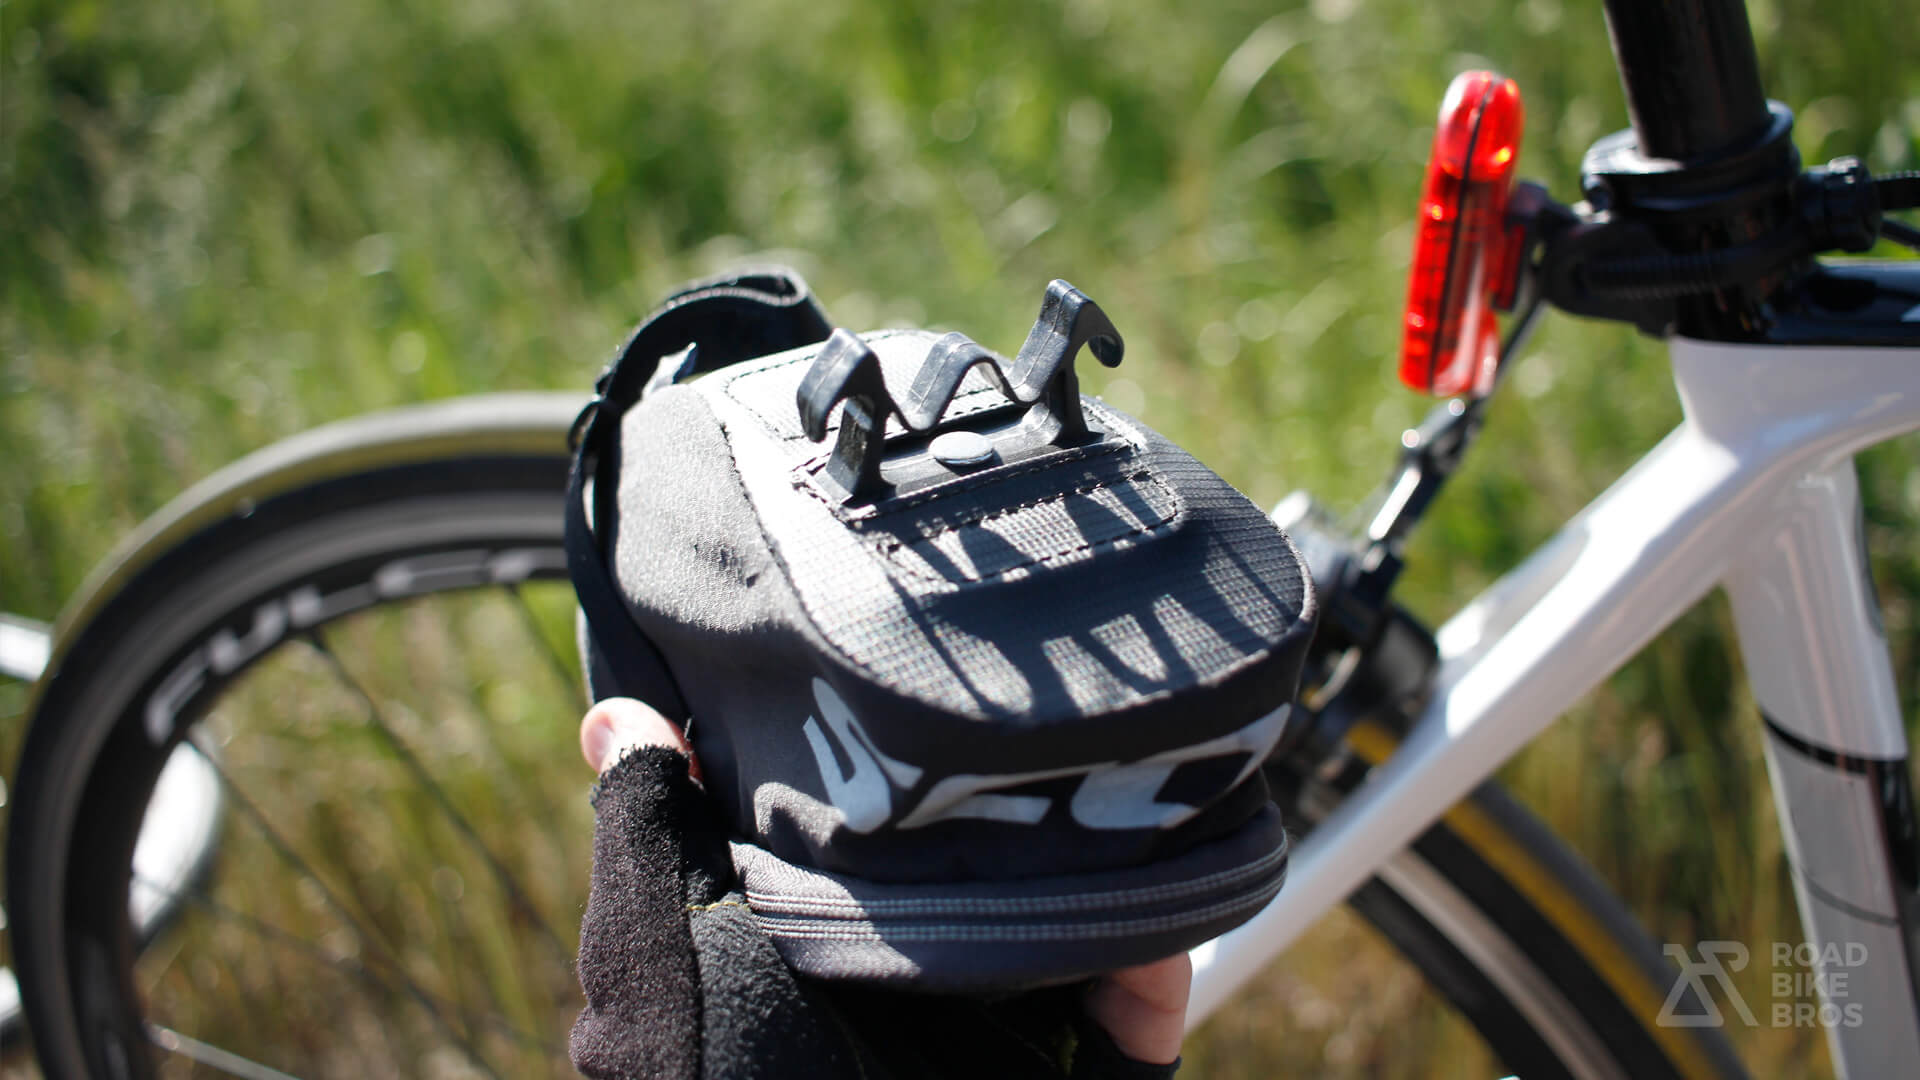 How to Choose a Road Bike Saddlebag Attaching System